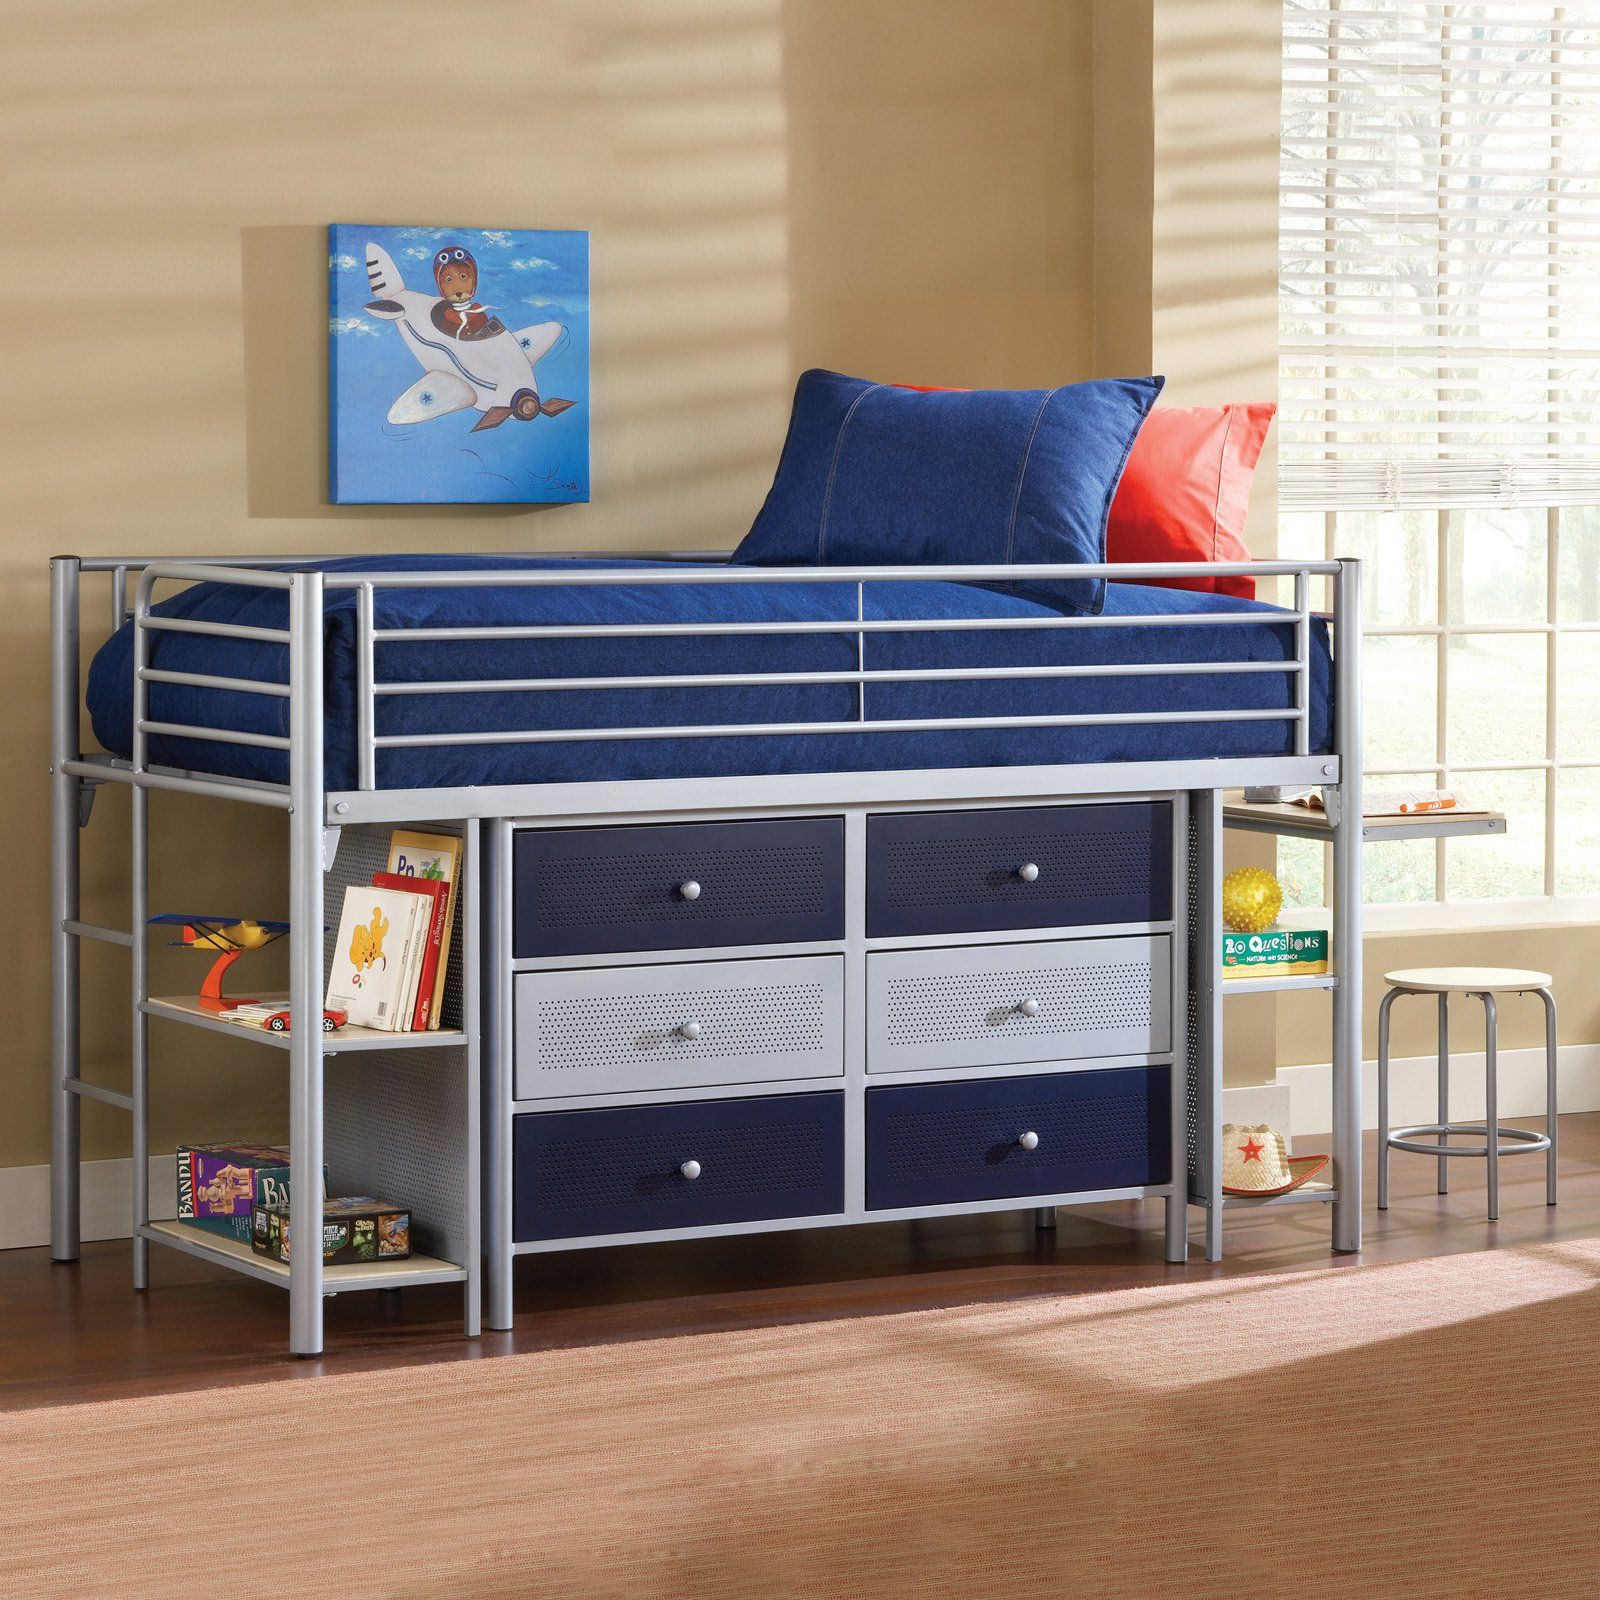 Awesome Metal Loft Bed With Dresser And